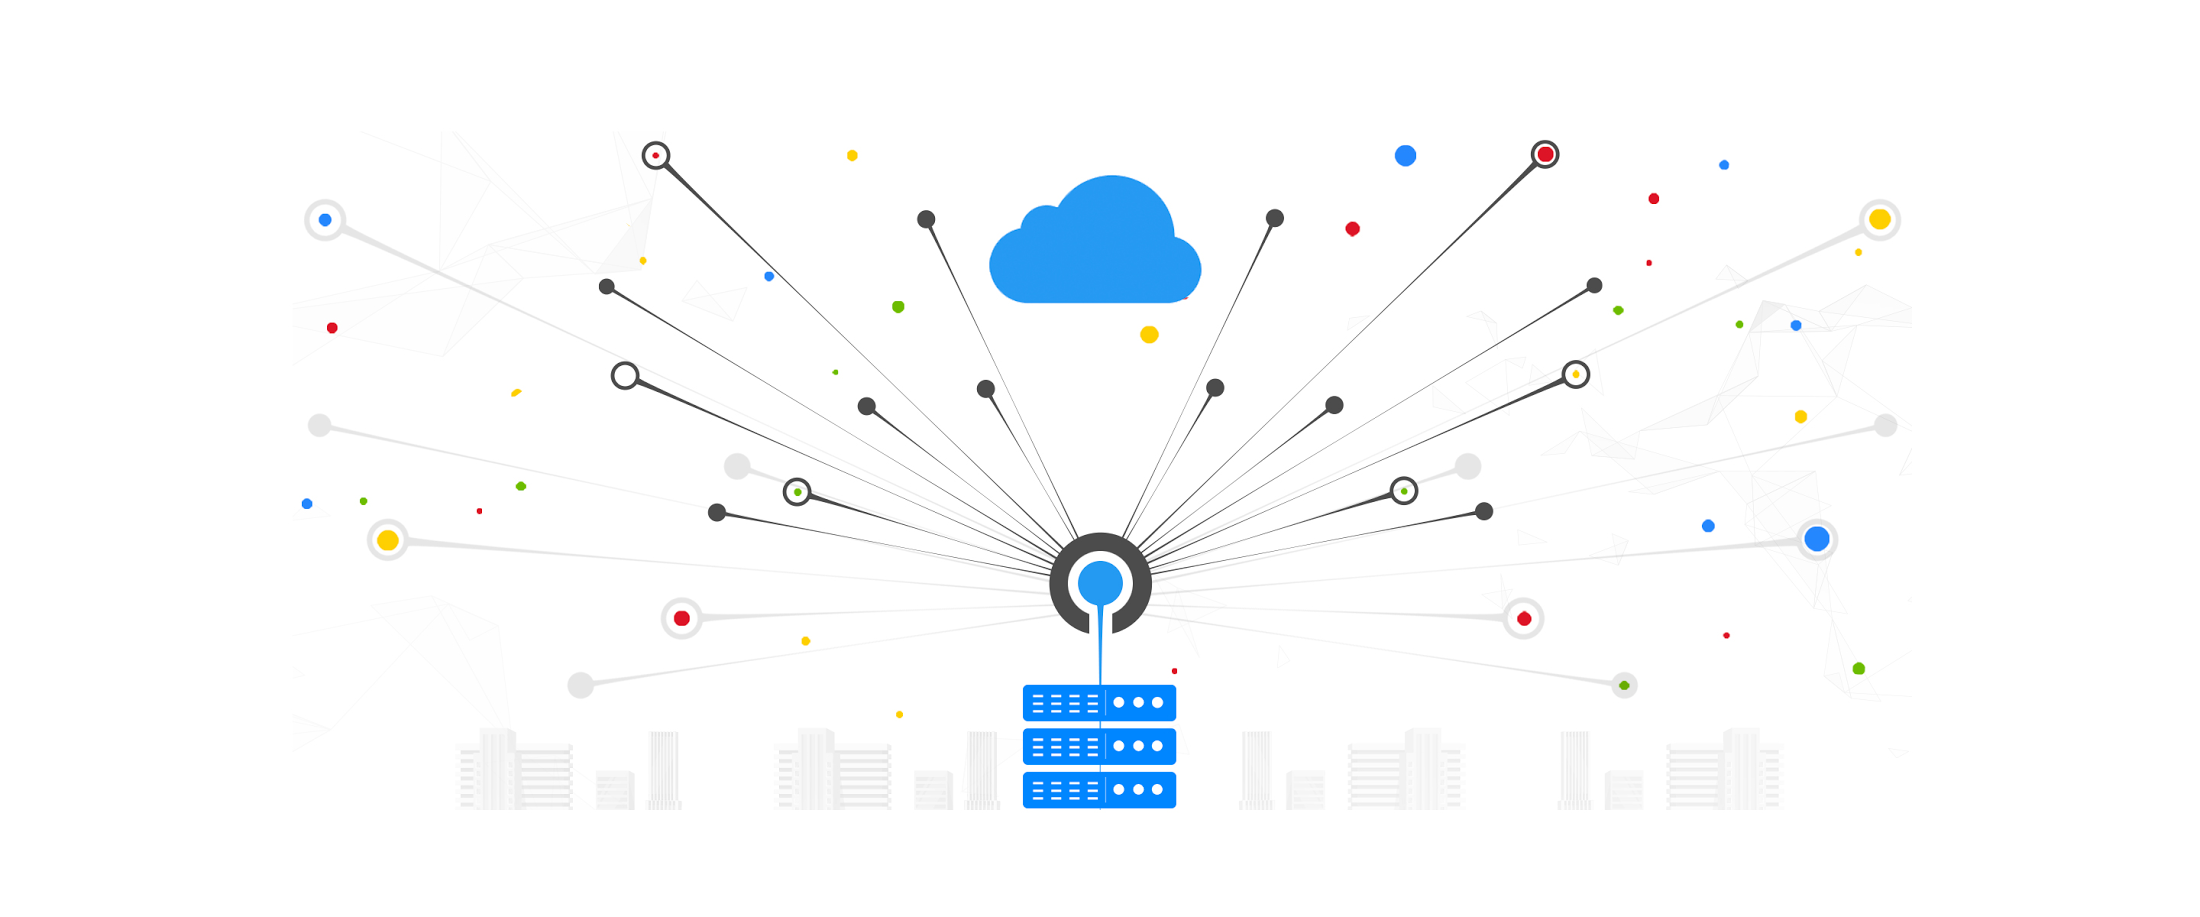 Bringing the best of open source to Google Cloud customers